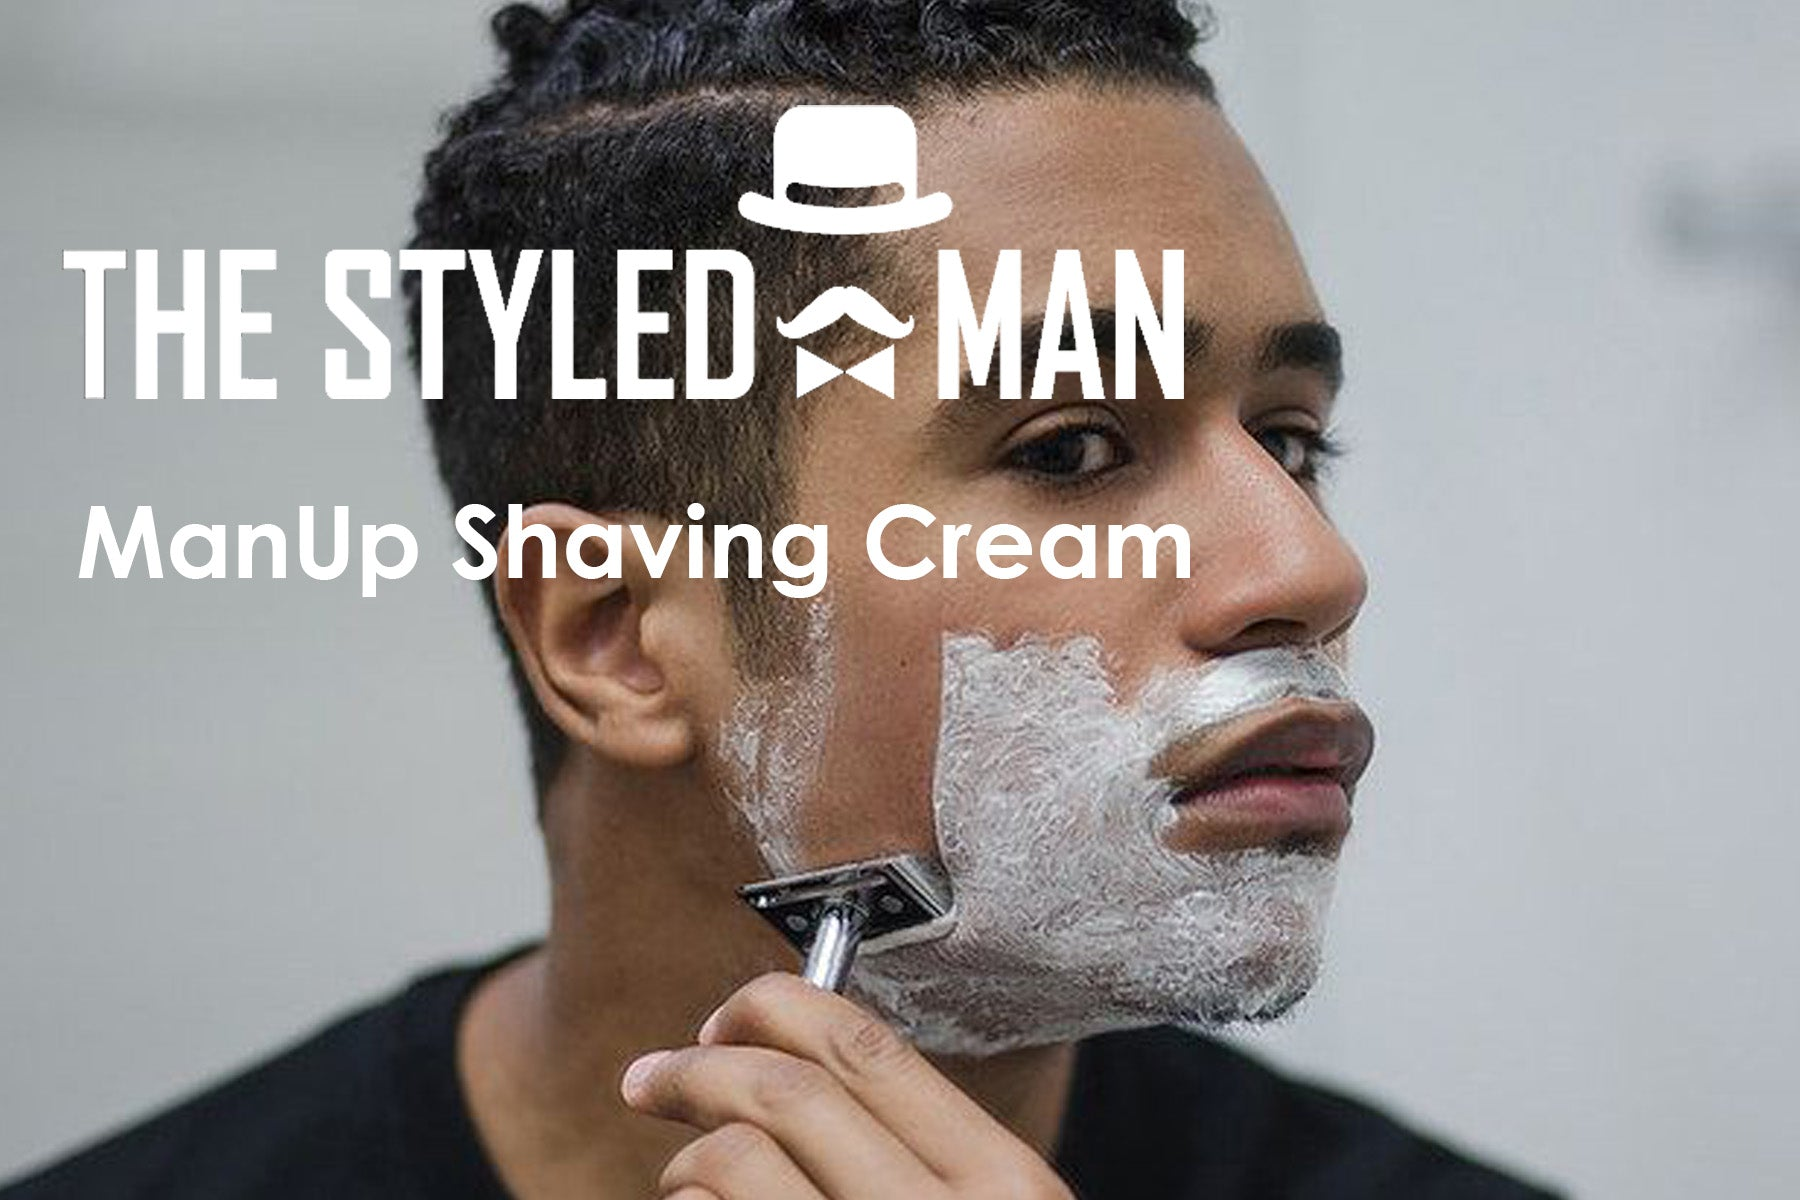 ManUp Shaving Cream